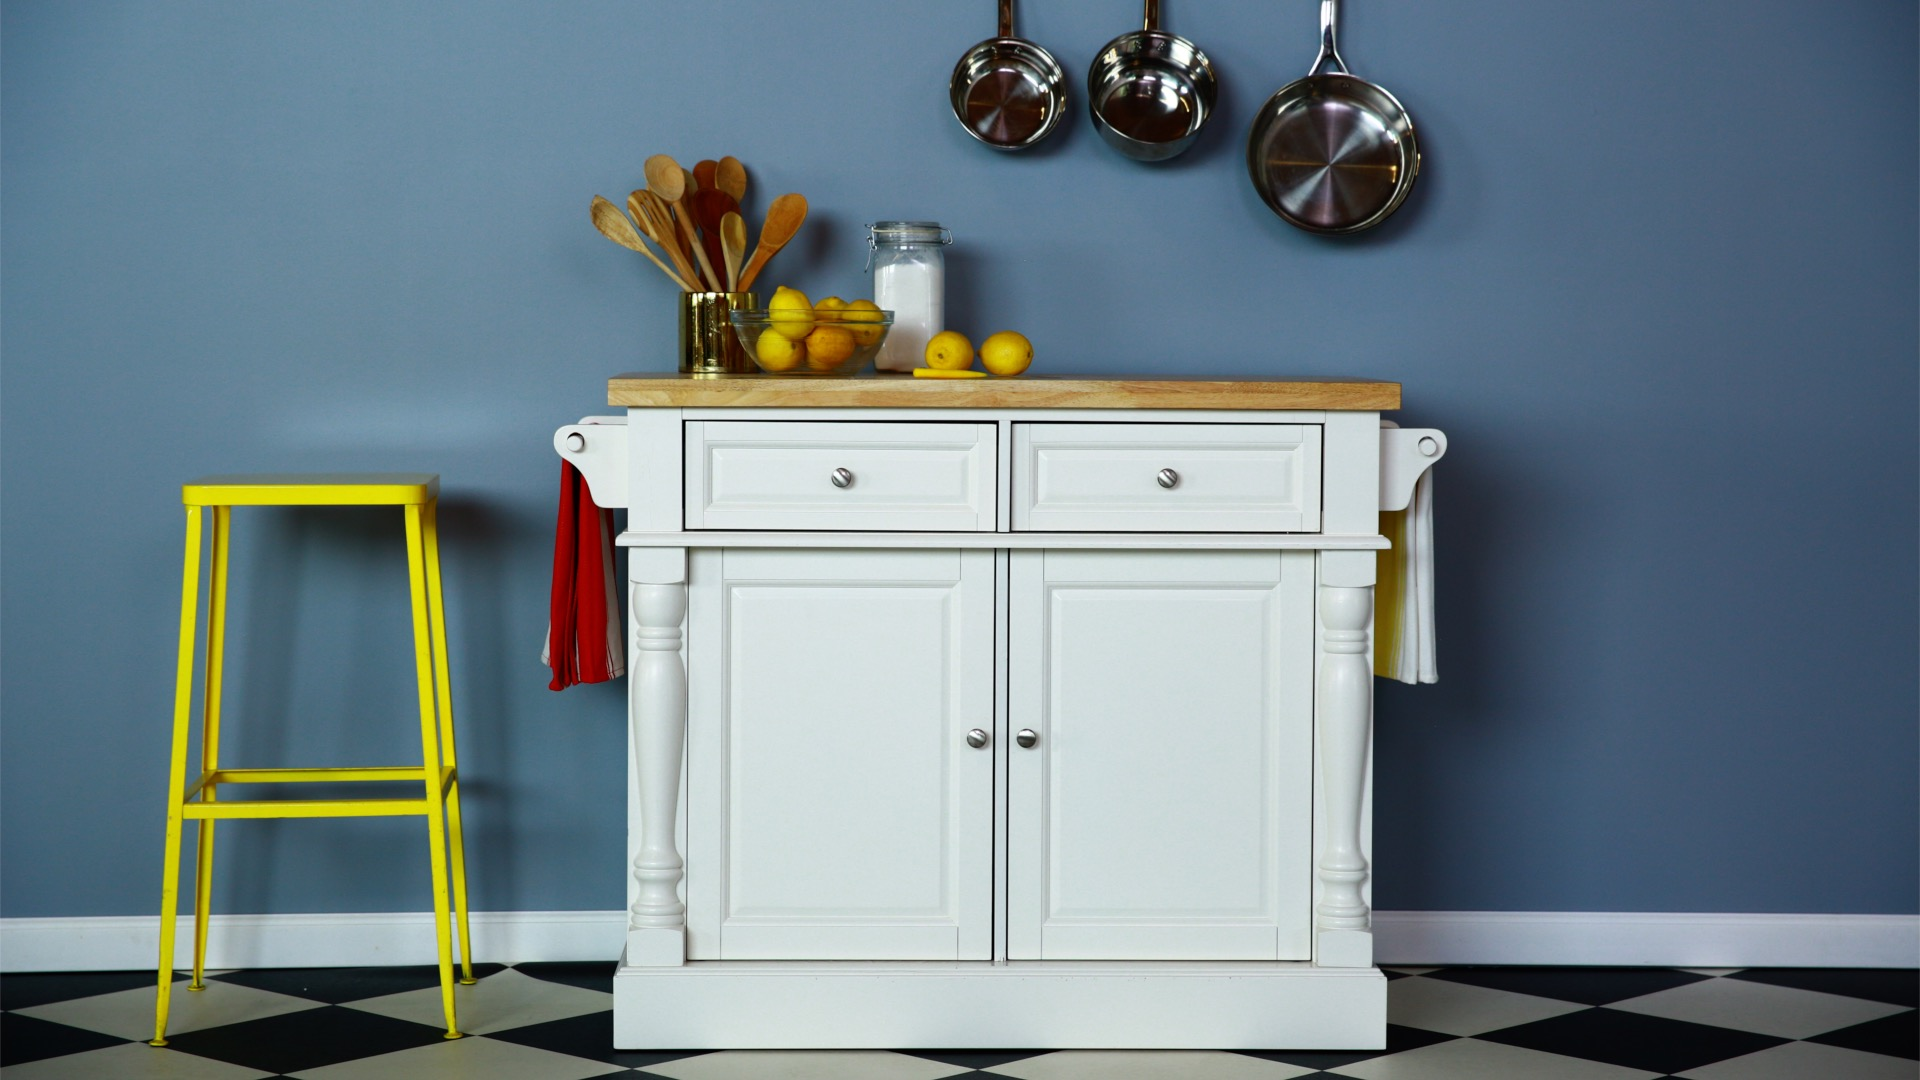 Finding Kitchen Islands and Carts